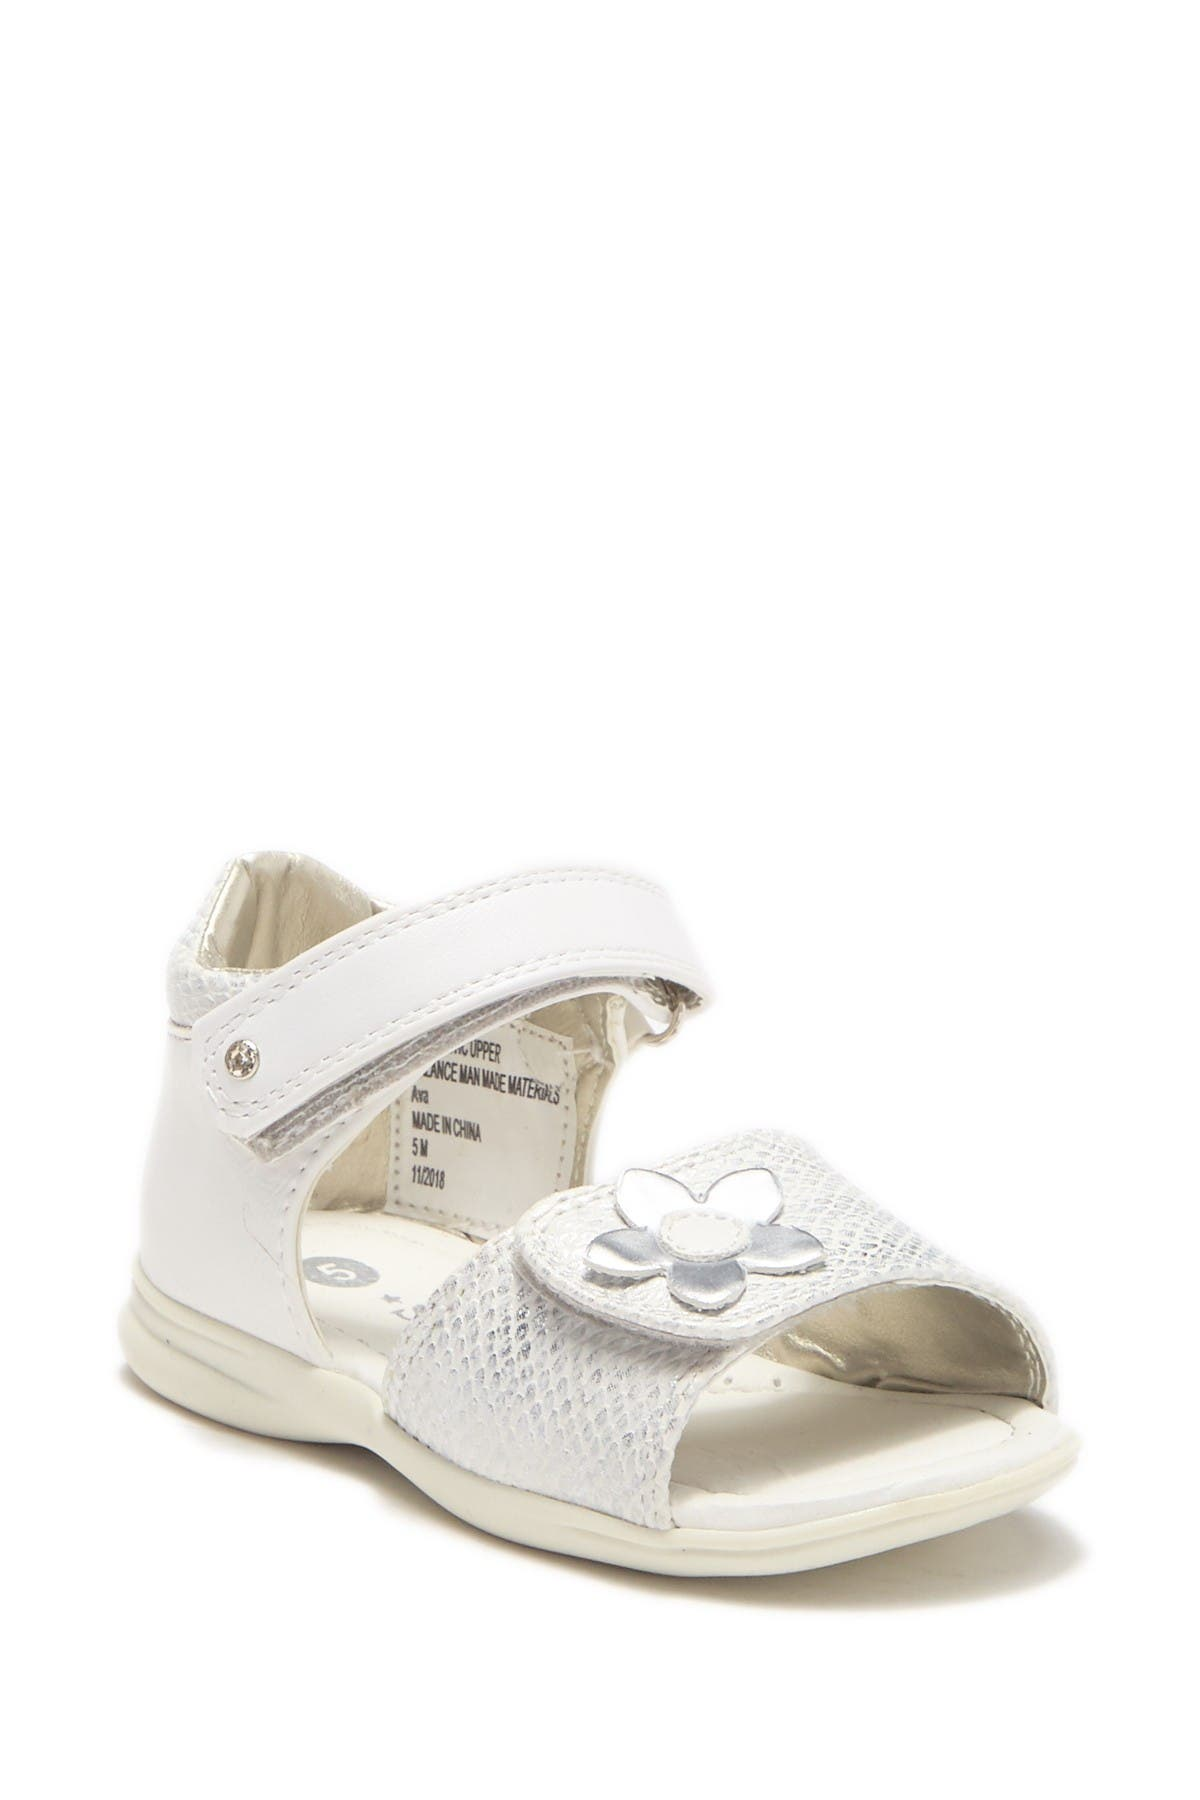 Image of SPROX Ava Sandal